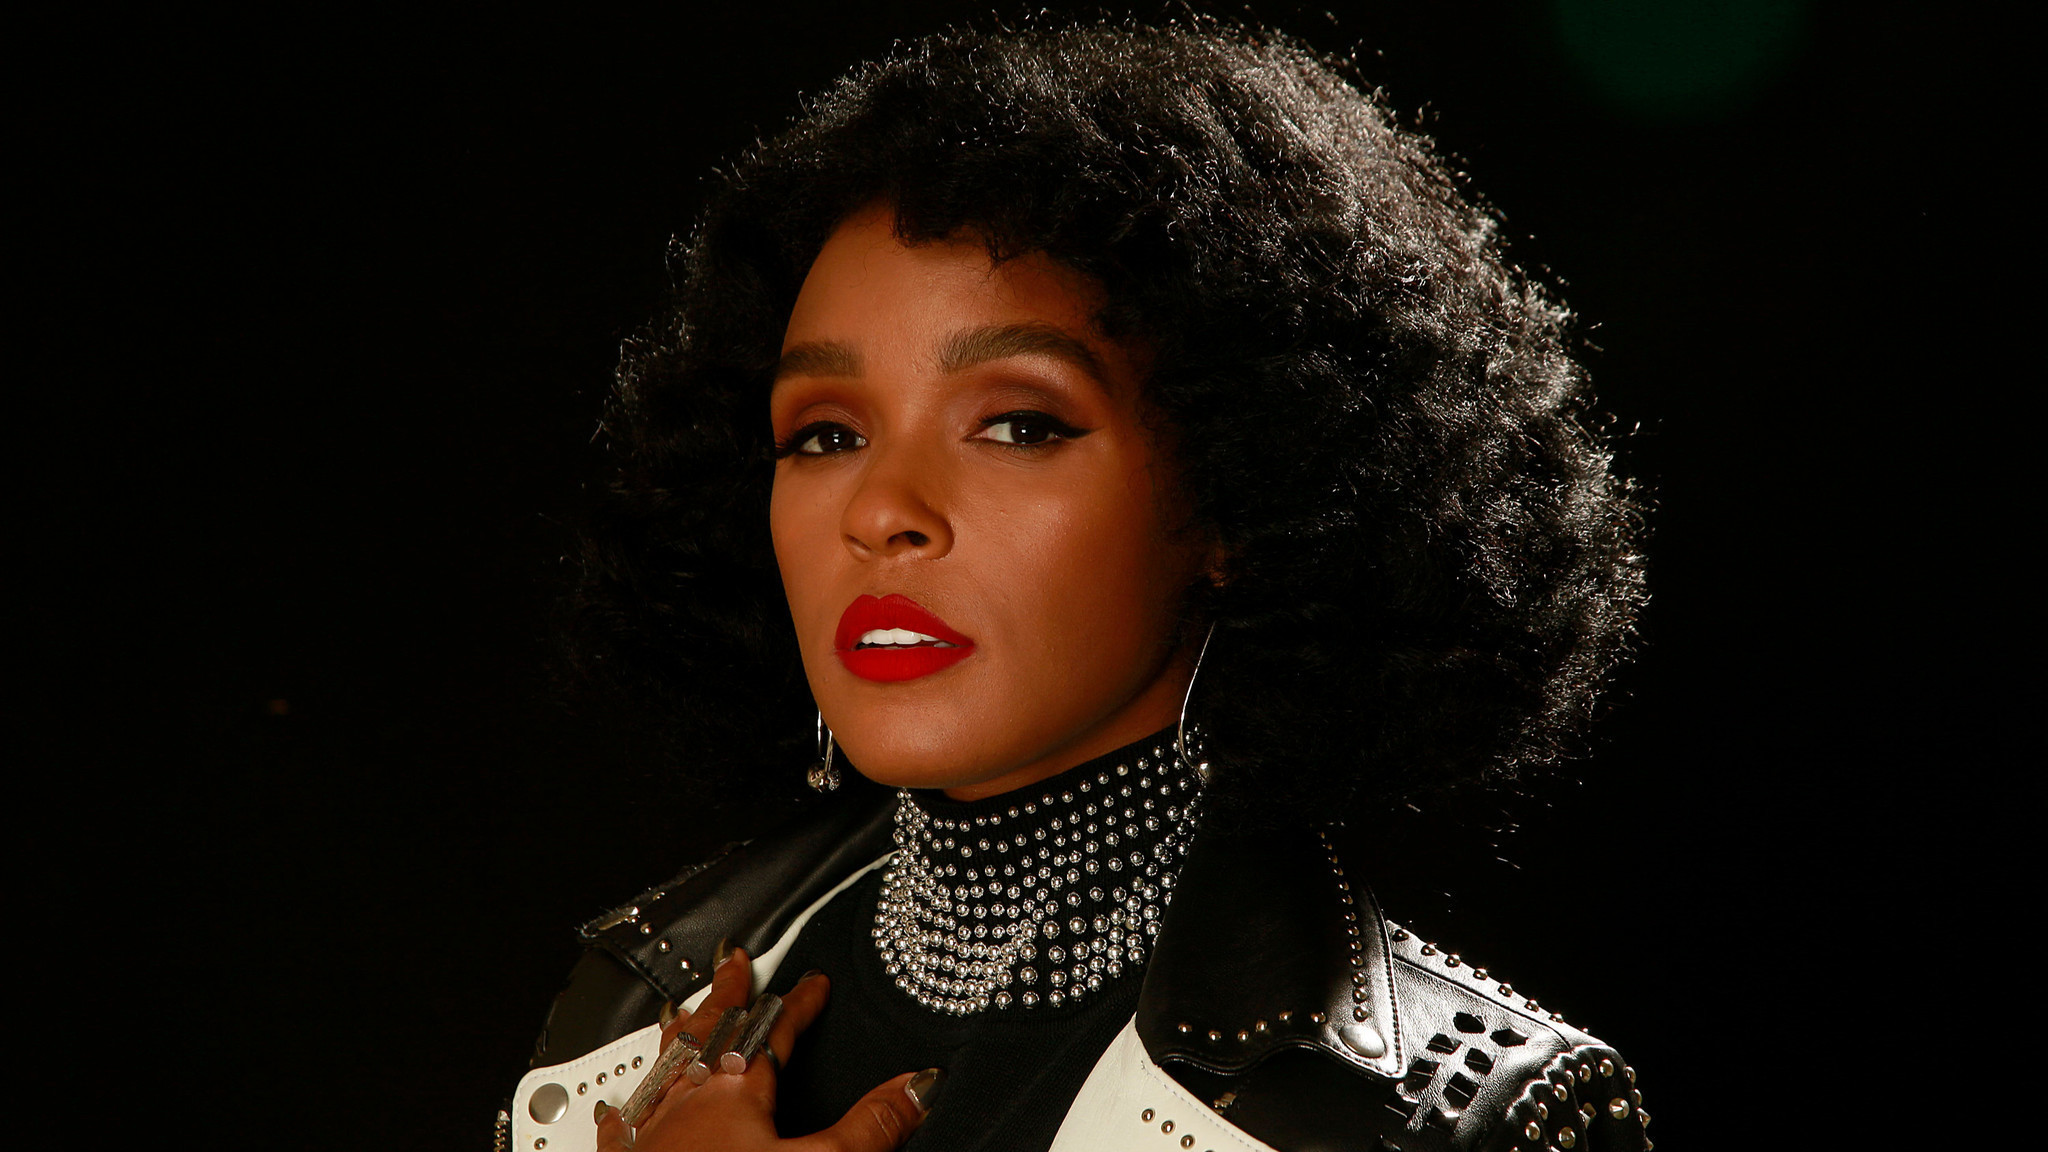 Il nuovo video di Janelle Monáe è una celebrazione del 'pussy power' [Video]